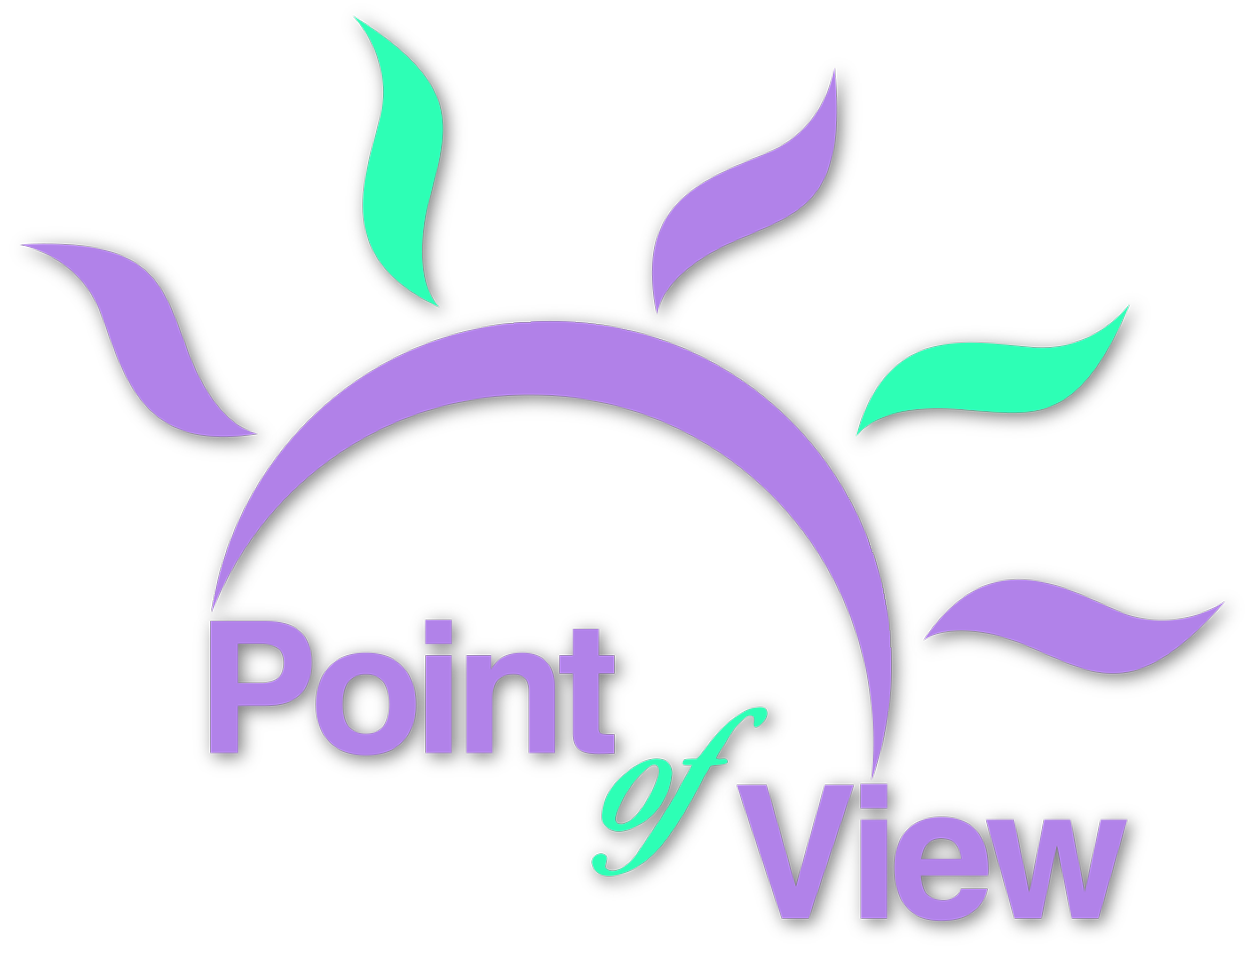 Point Of View PNG Transparent Point Of View.PNG Images.